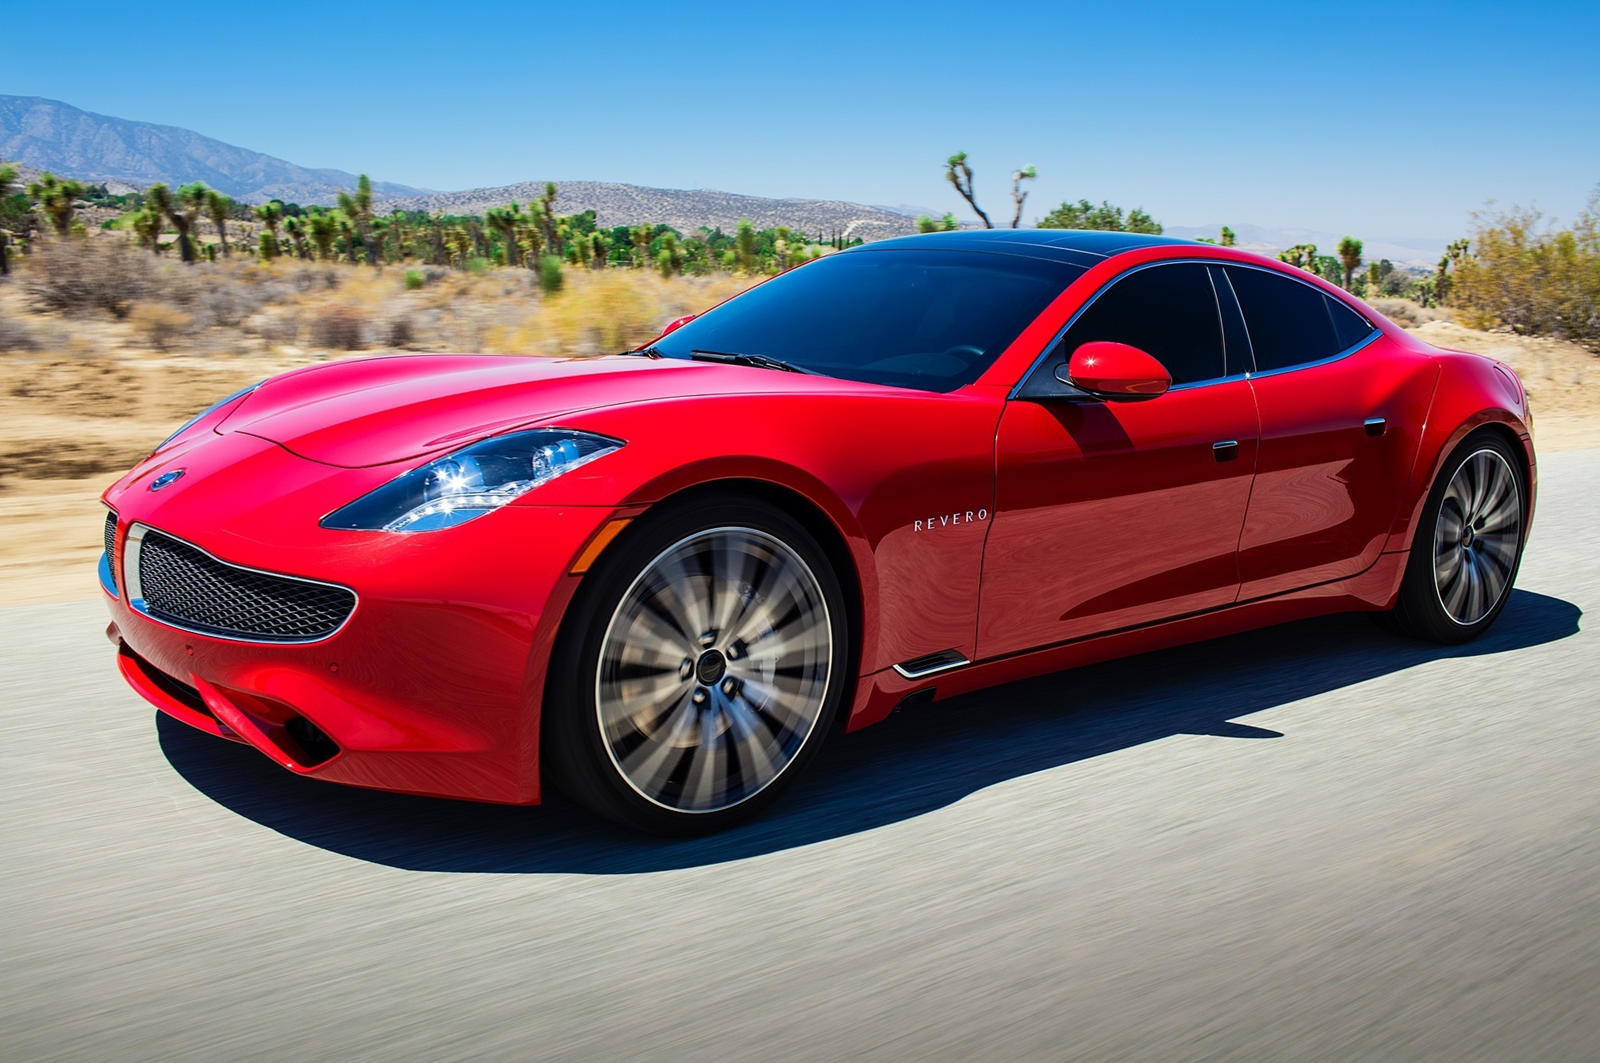 Karma Revero Recalled Because One Important Safety Feature Isn't Working